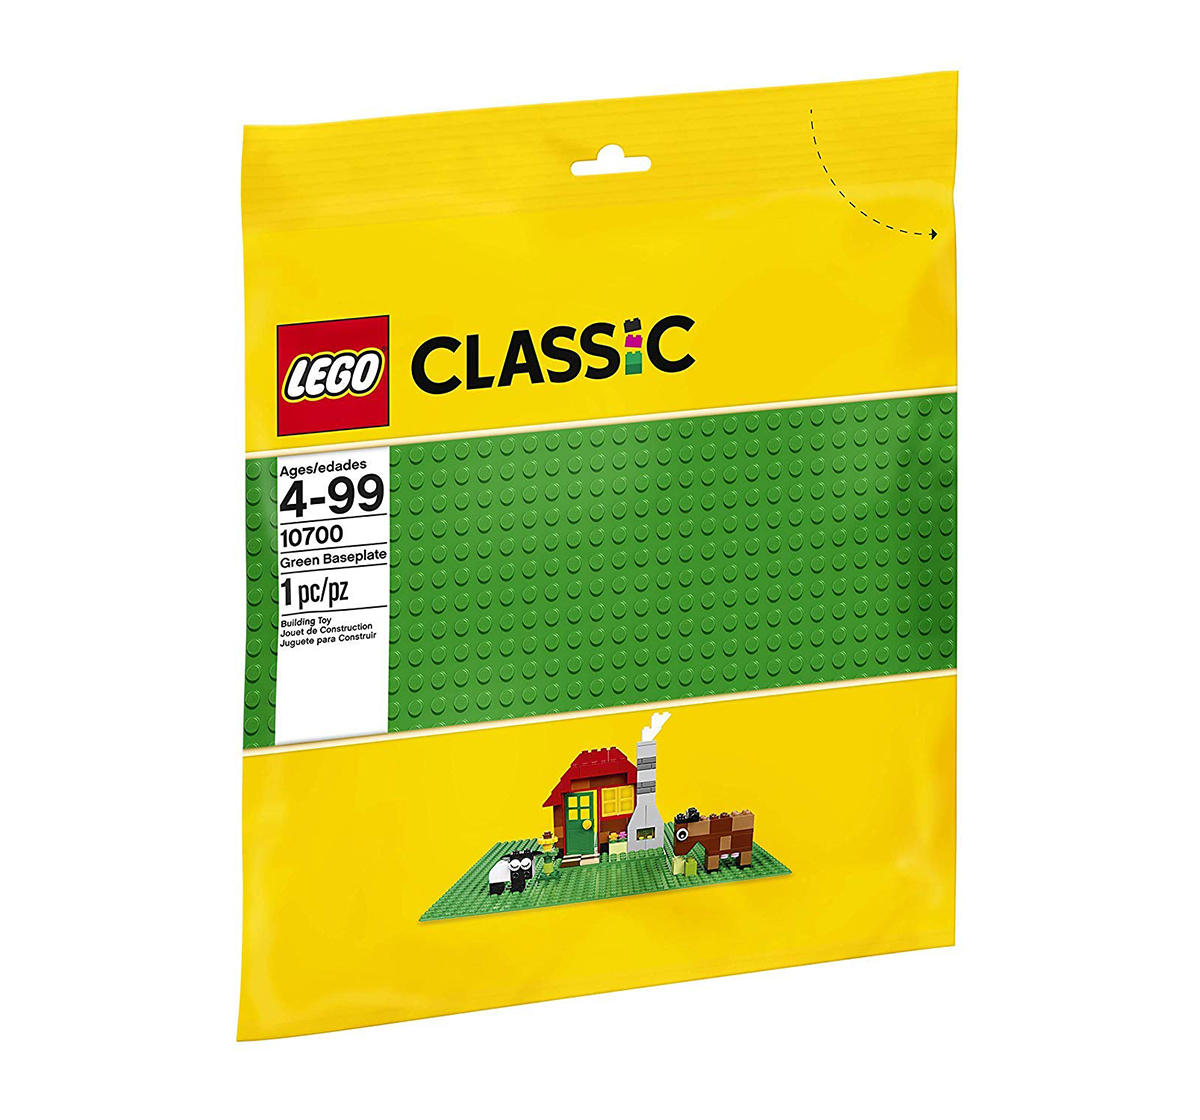 LEGO | Lego Classic Baseplate Supplement 10700 (Multi Color) Blocks for Kids age 4Y+ (Green)